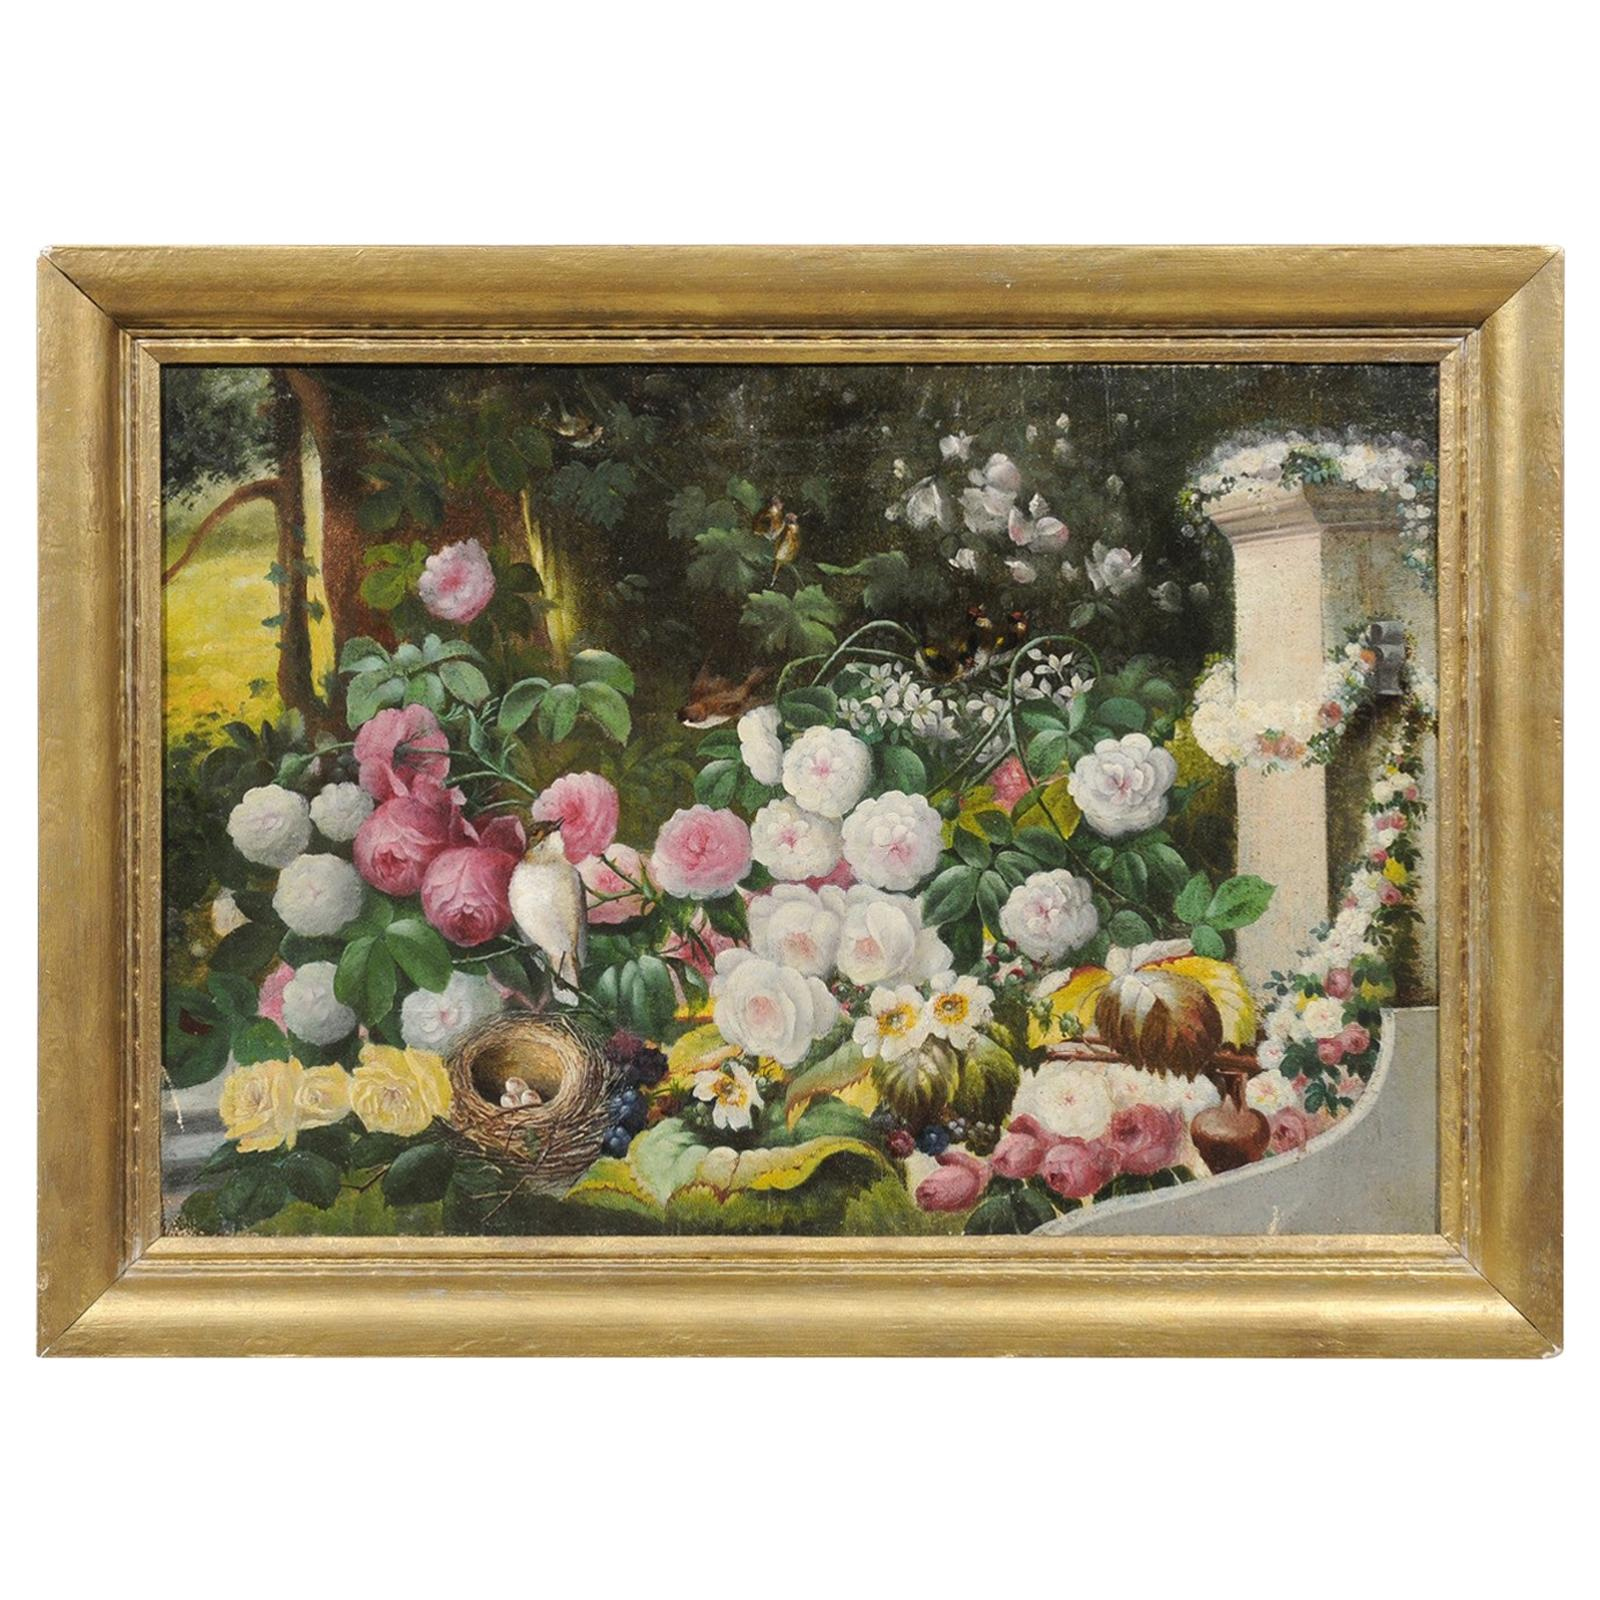 French 19th Century Oil on Canvas Still-Life Painting Depicting Colorful Flowers